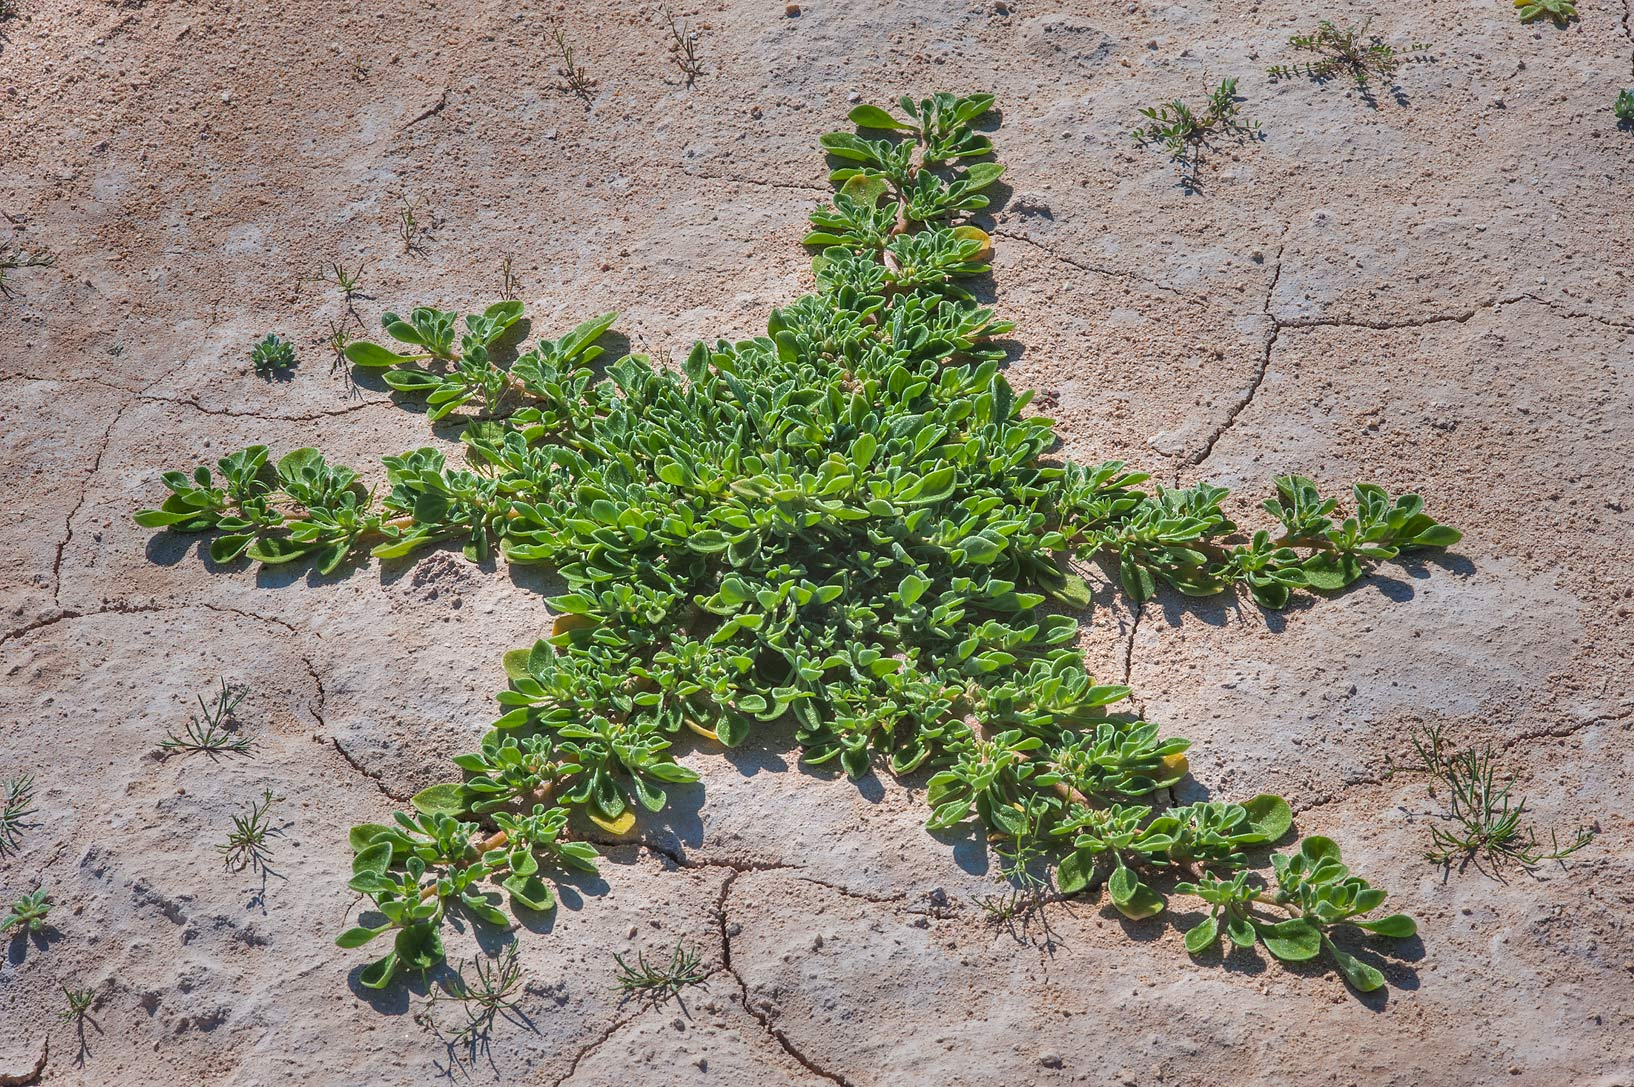 Star shaped plant of purslane-leaved aizoon...near Route 77 to Ras Laffan. Qatar